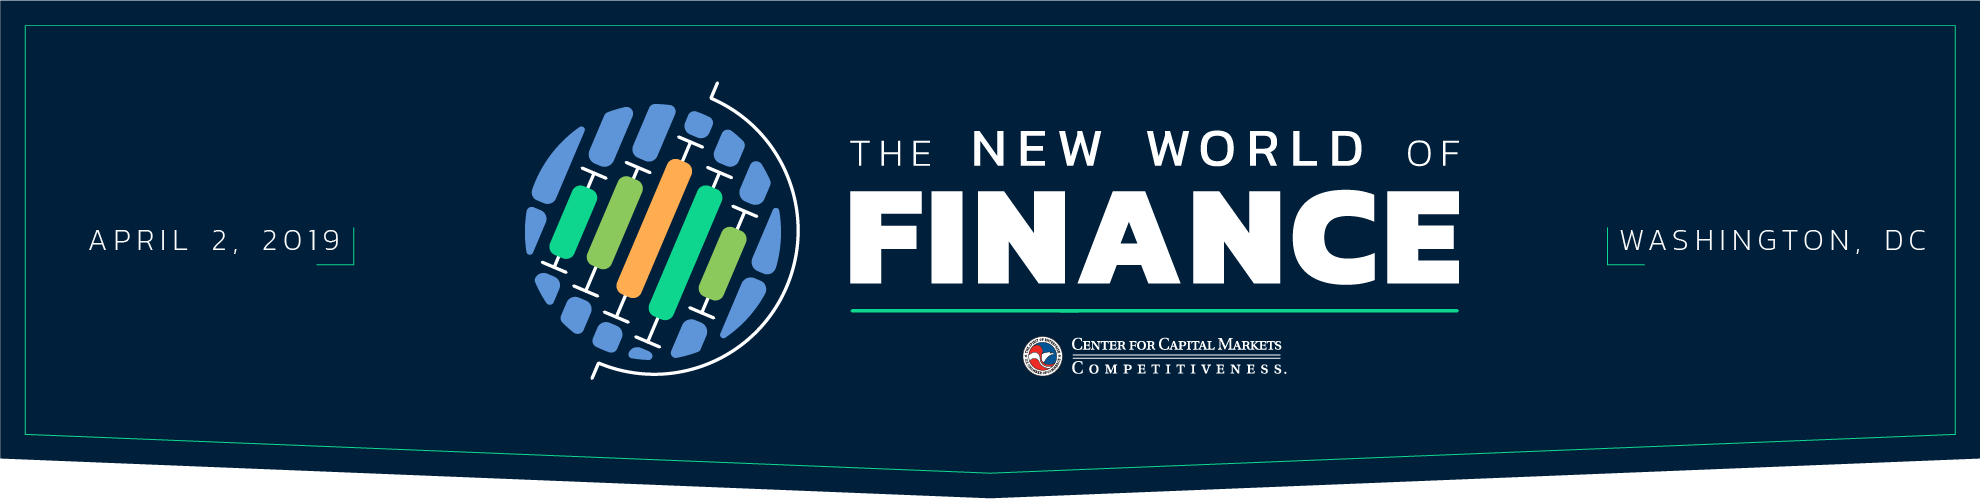 13th Annual Capital Markets Summit: The New World of Finance